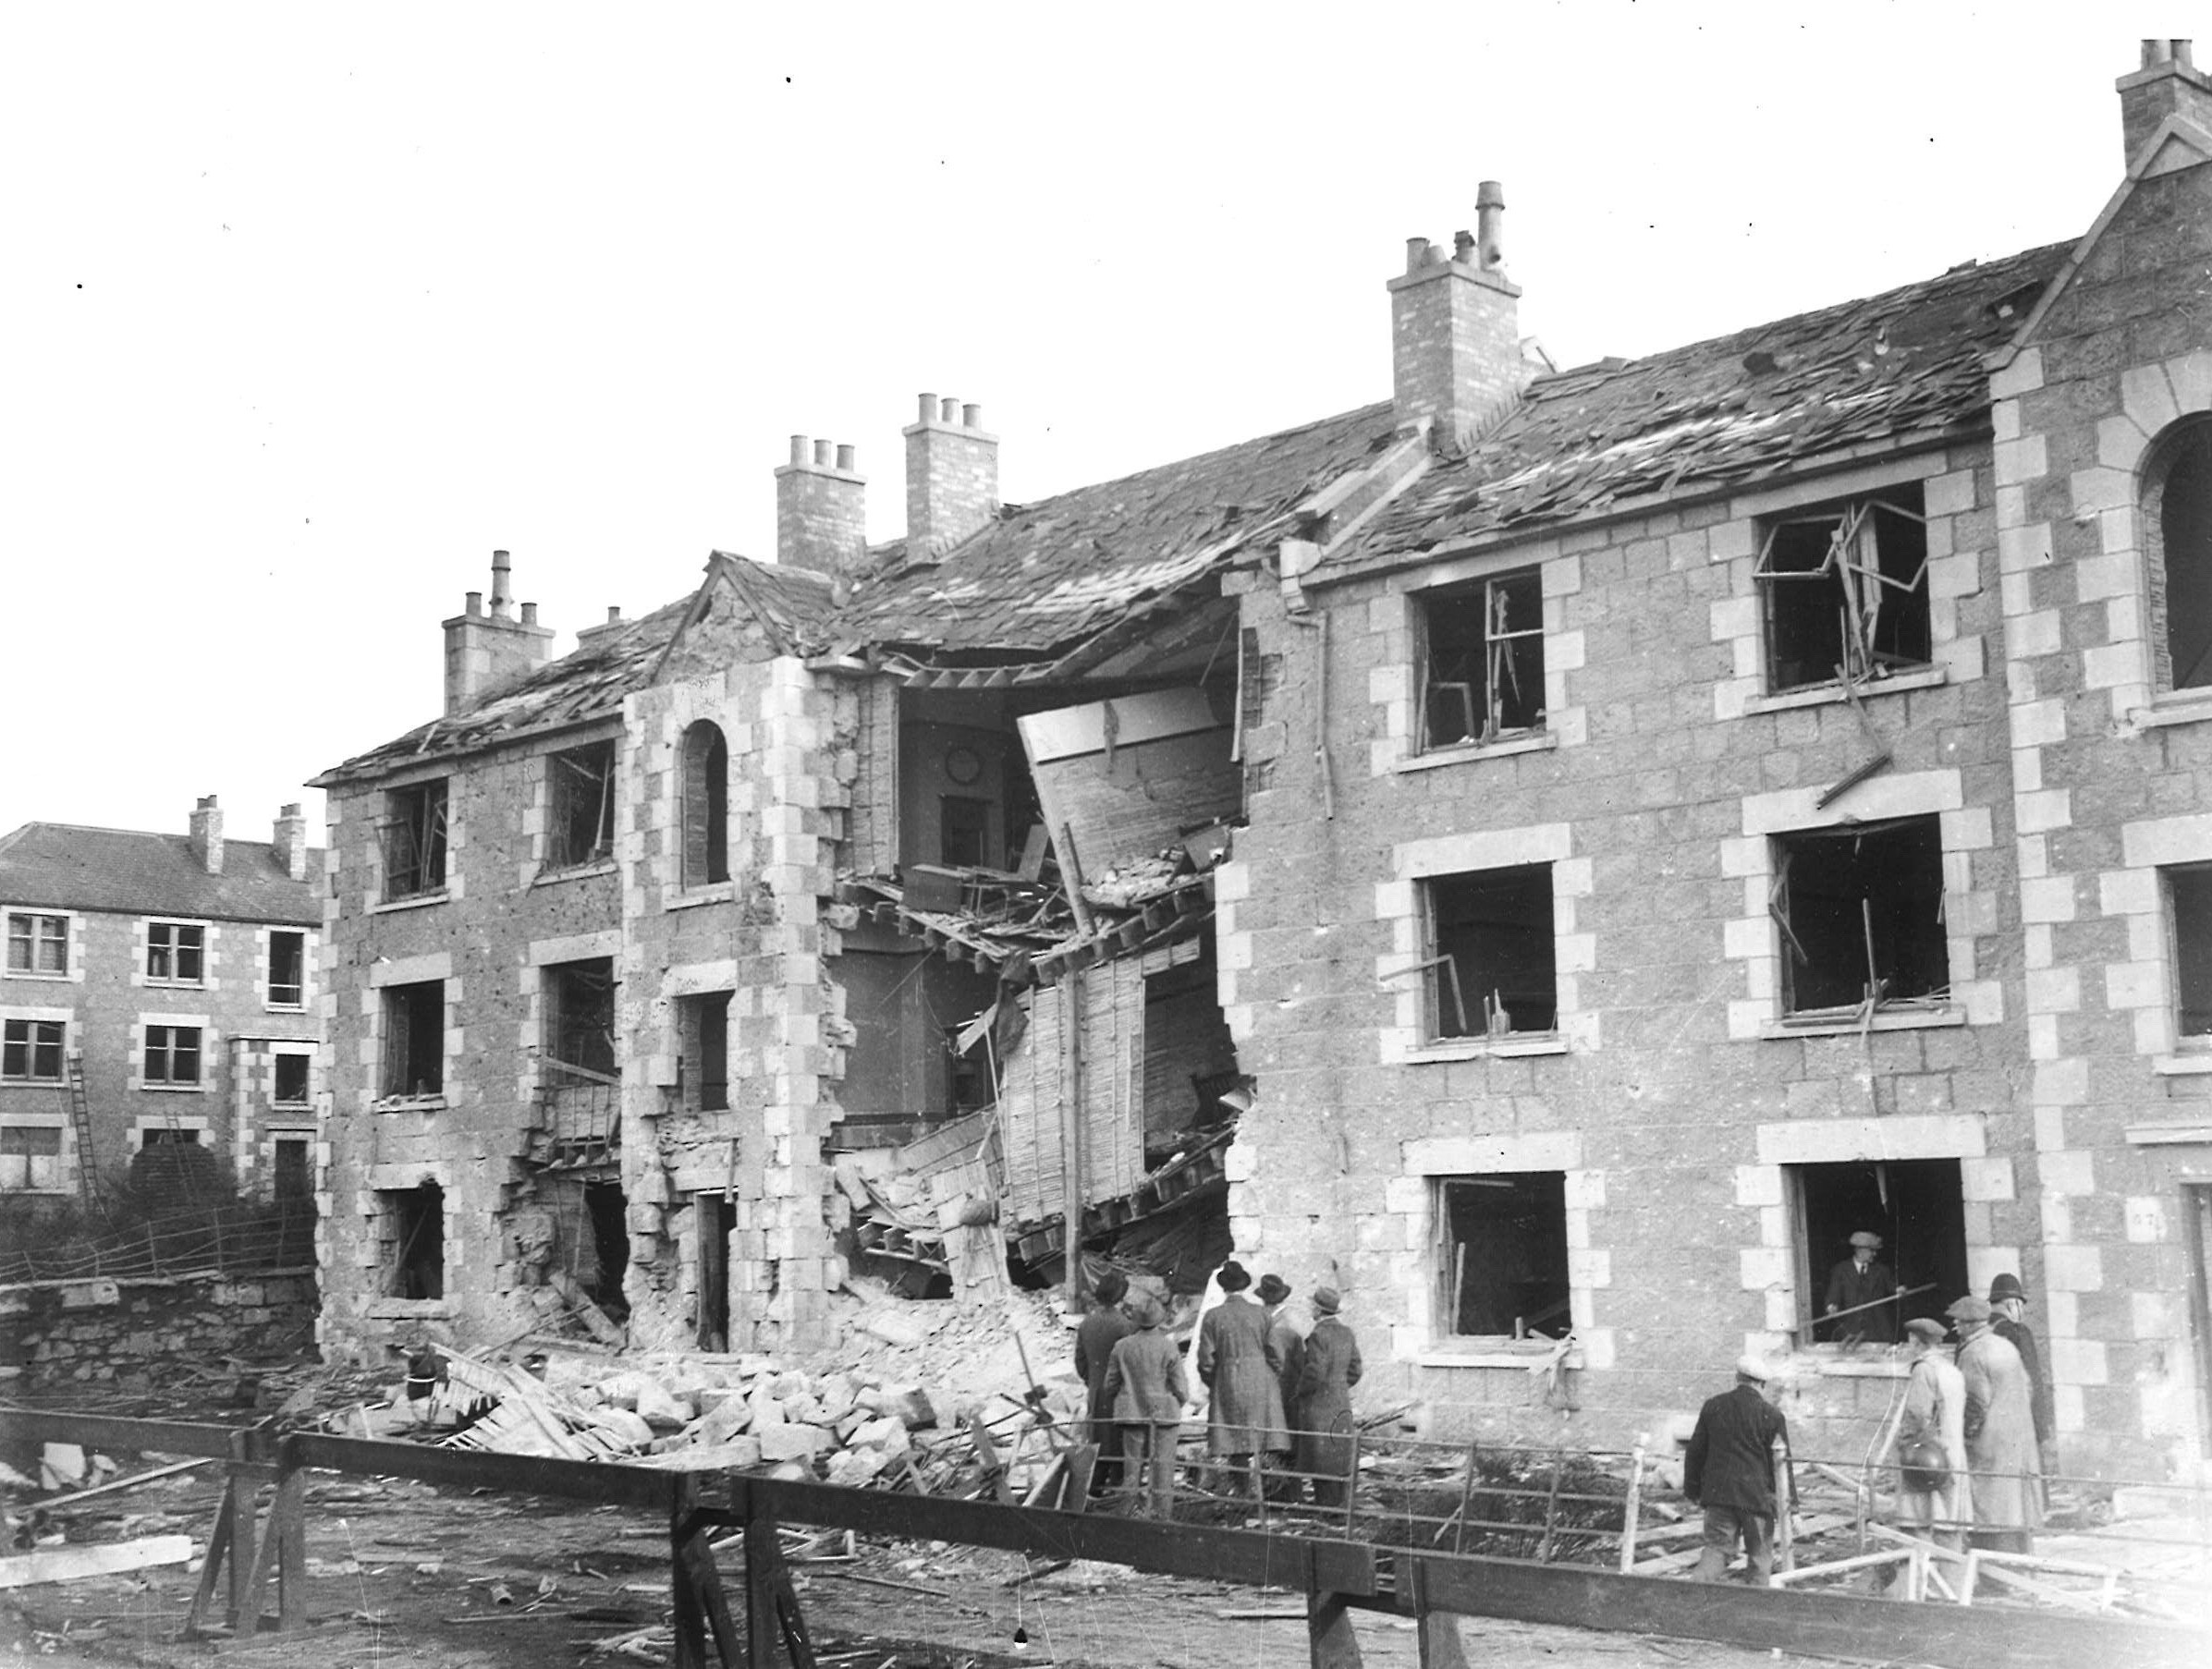 Damage after an air raid on Wellington Road, 4 November 1940